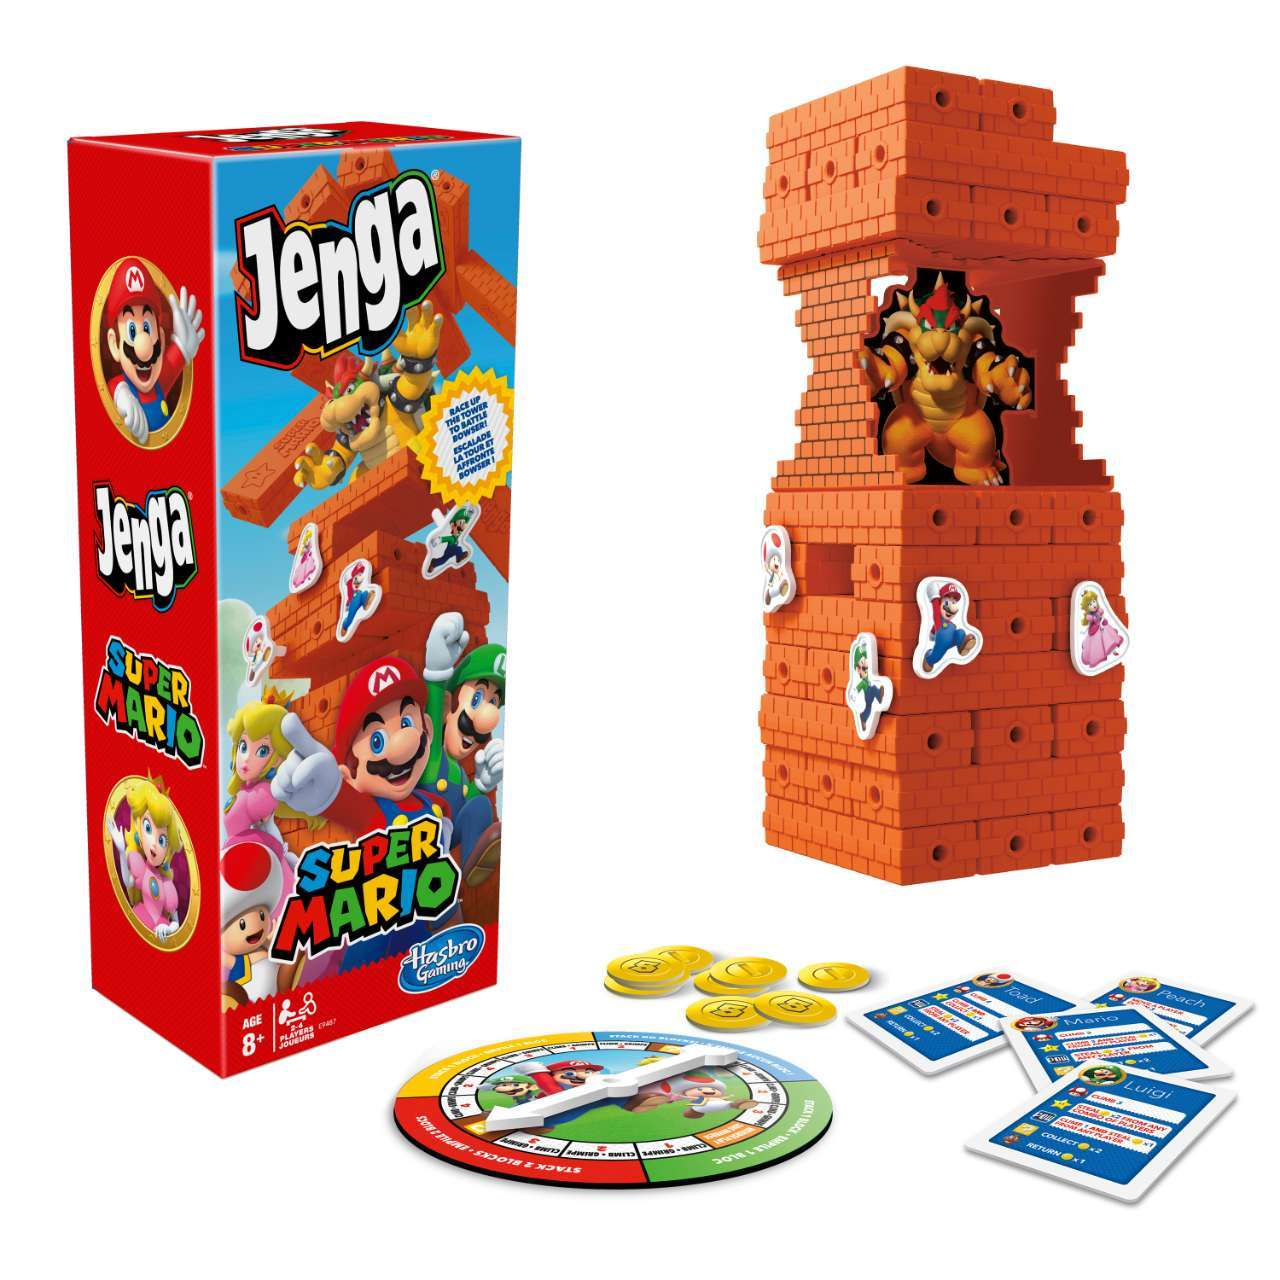 Jenga Super Mario_ Packaging and Game